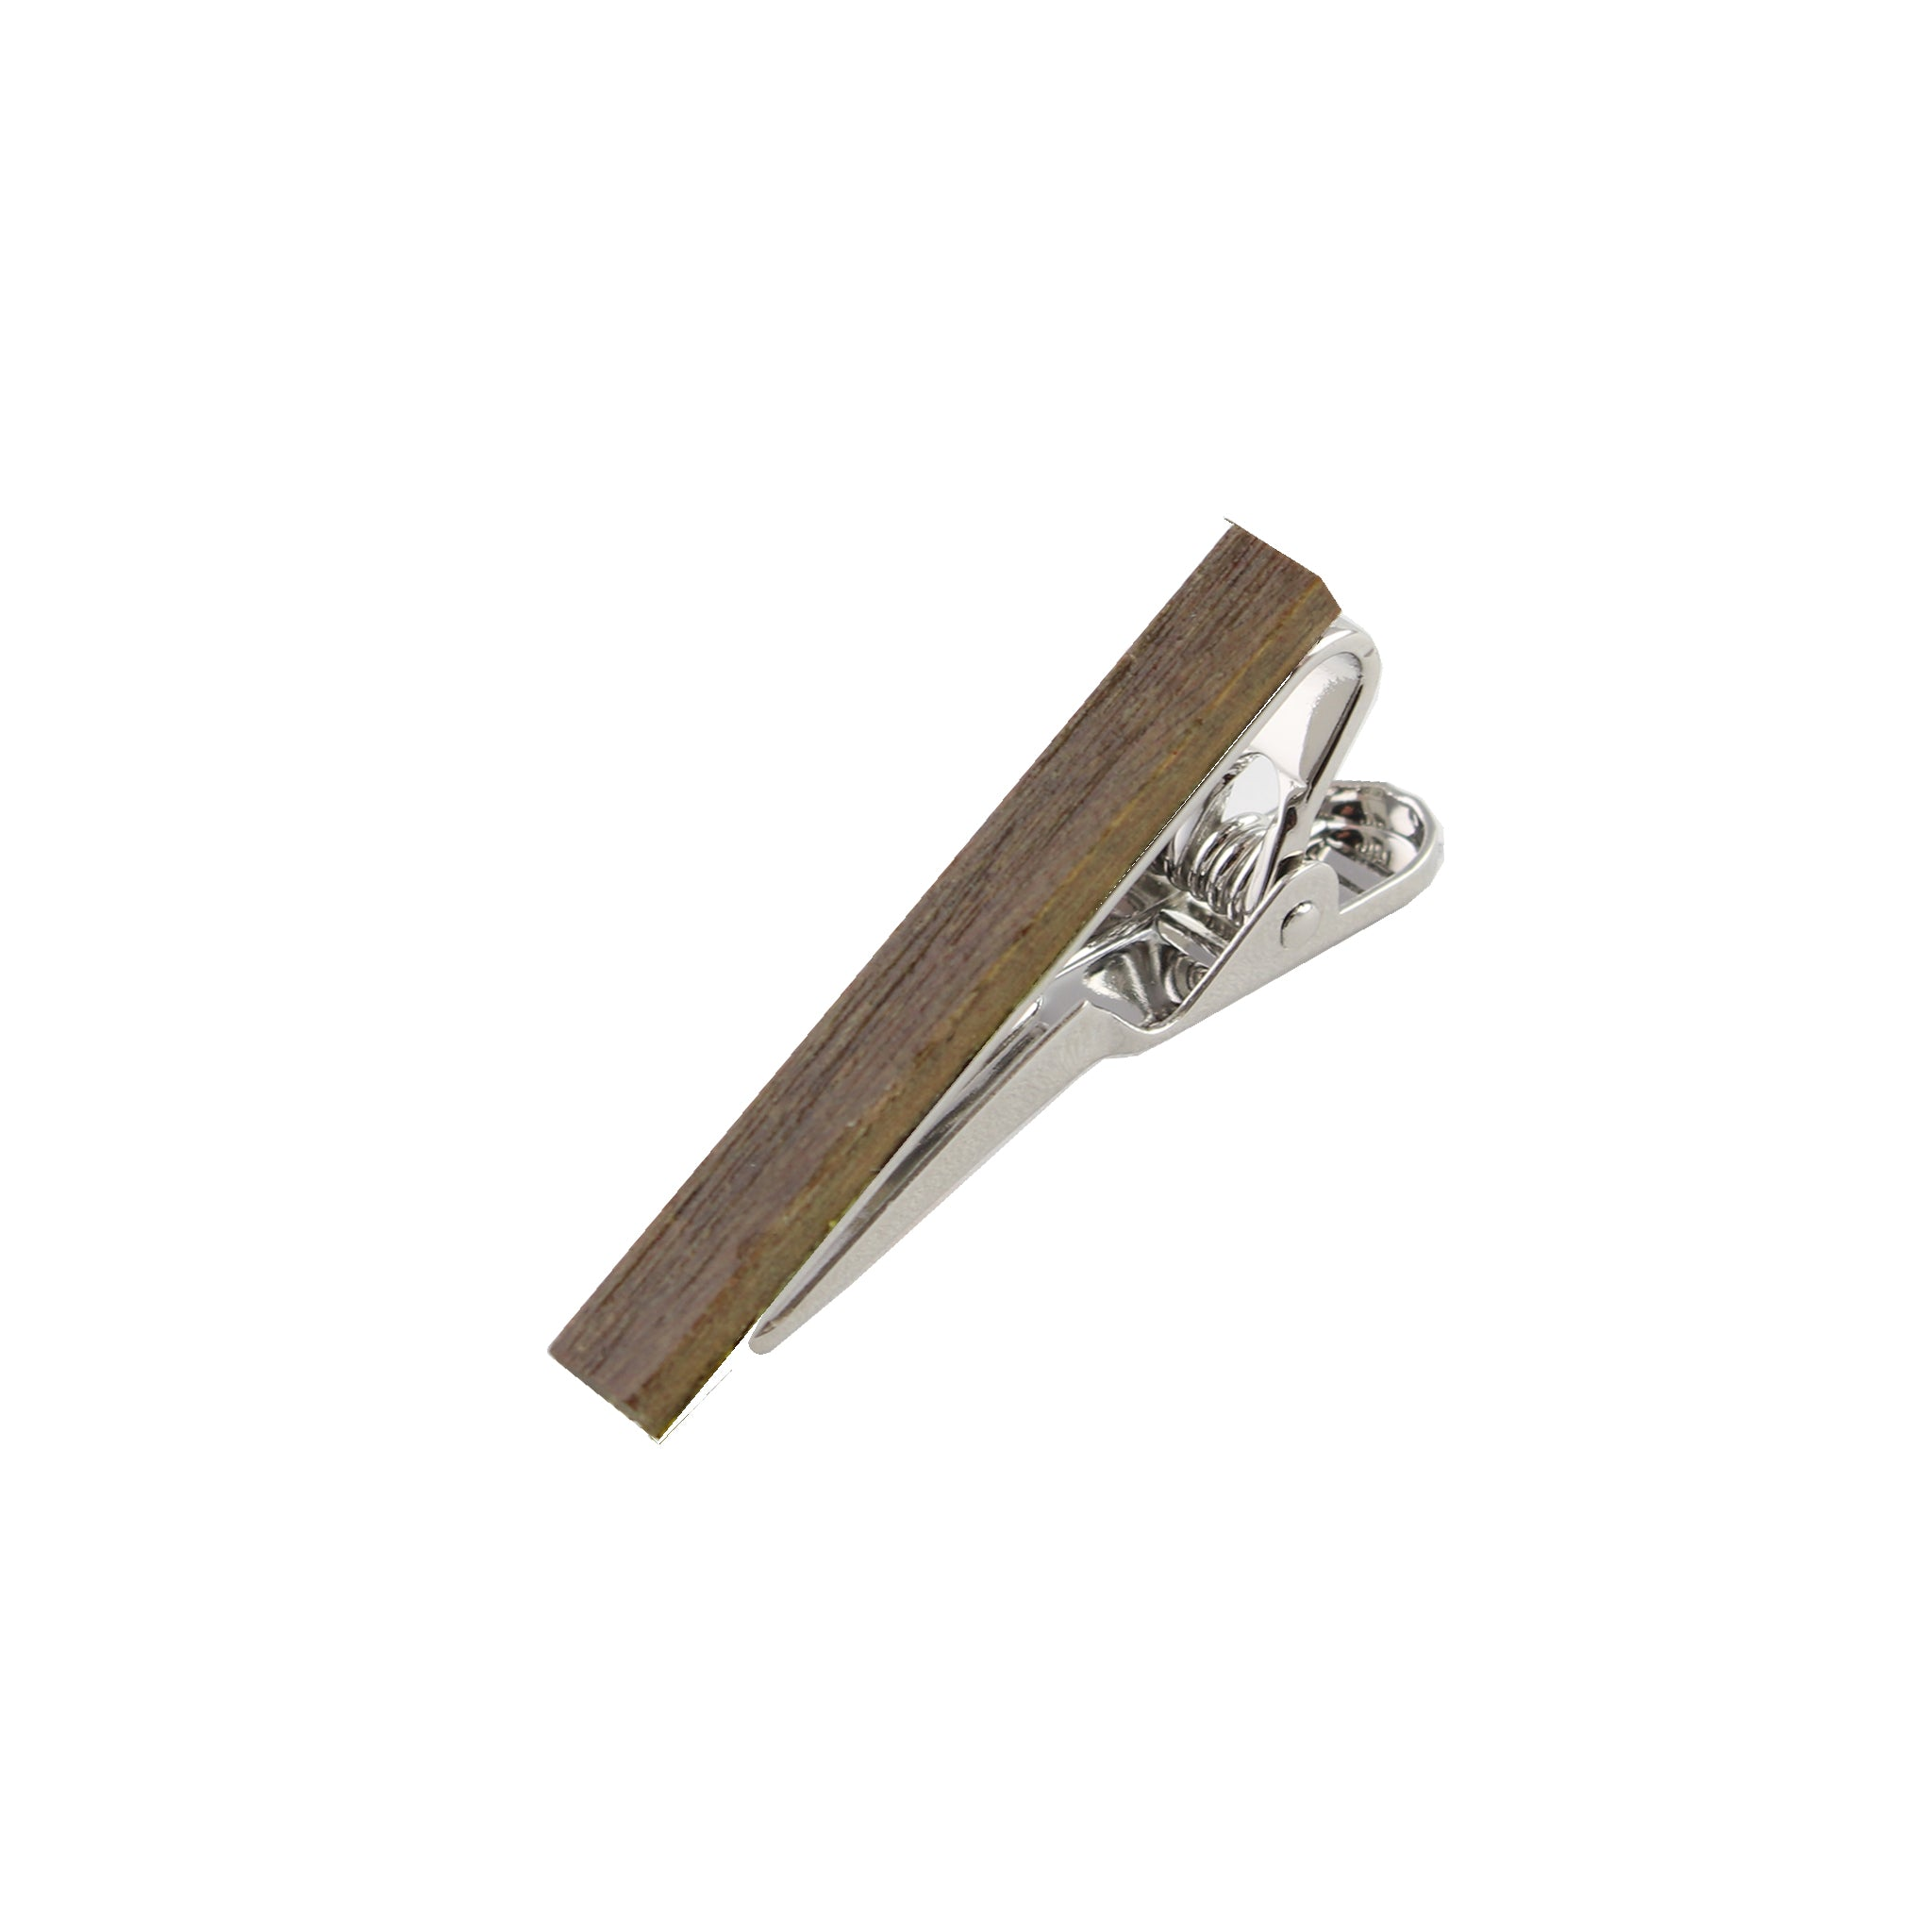 Palosantoes-Polished Wooden Tie Bar from DIBI